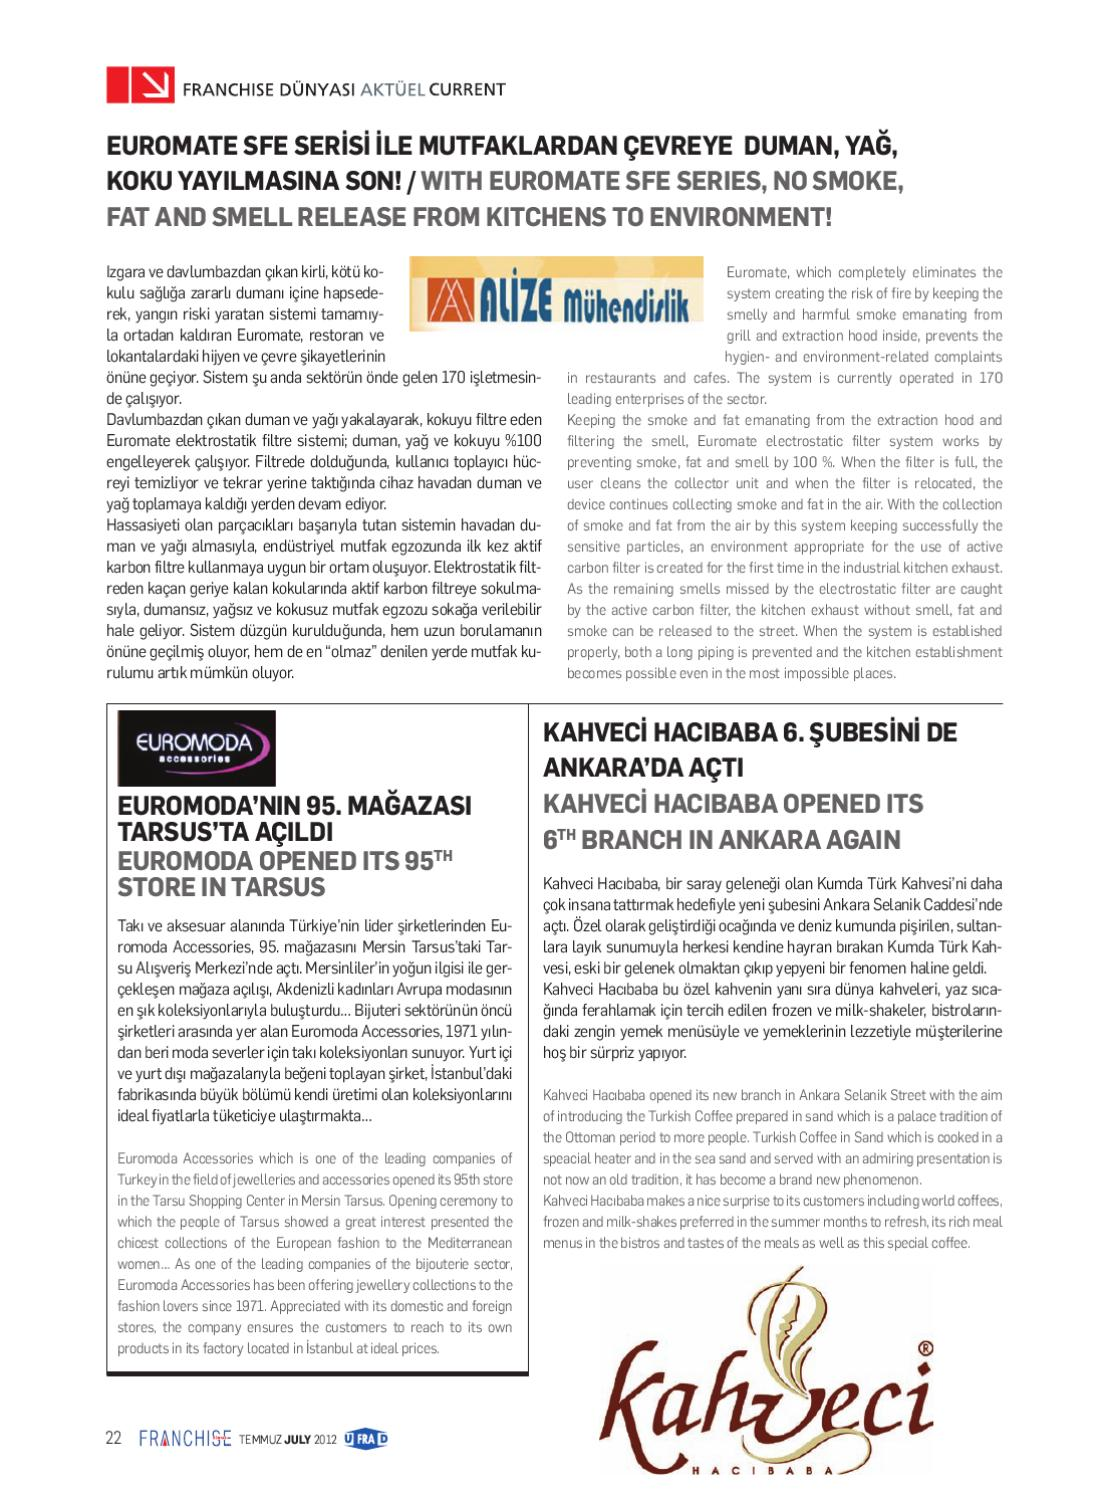 Euromate Grill Franchise World Issue July 2012 By Ferhat Gedik Issuu